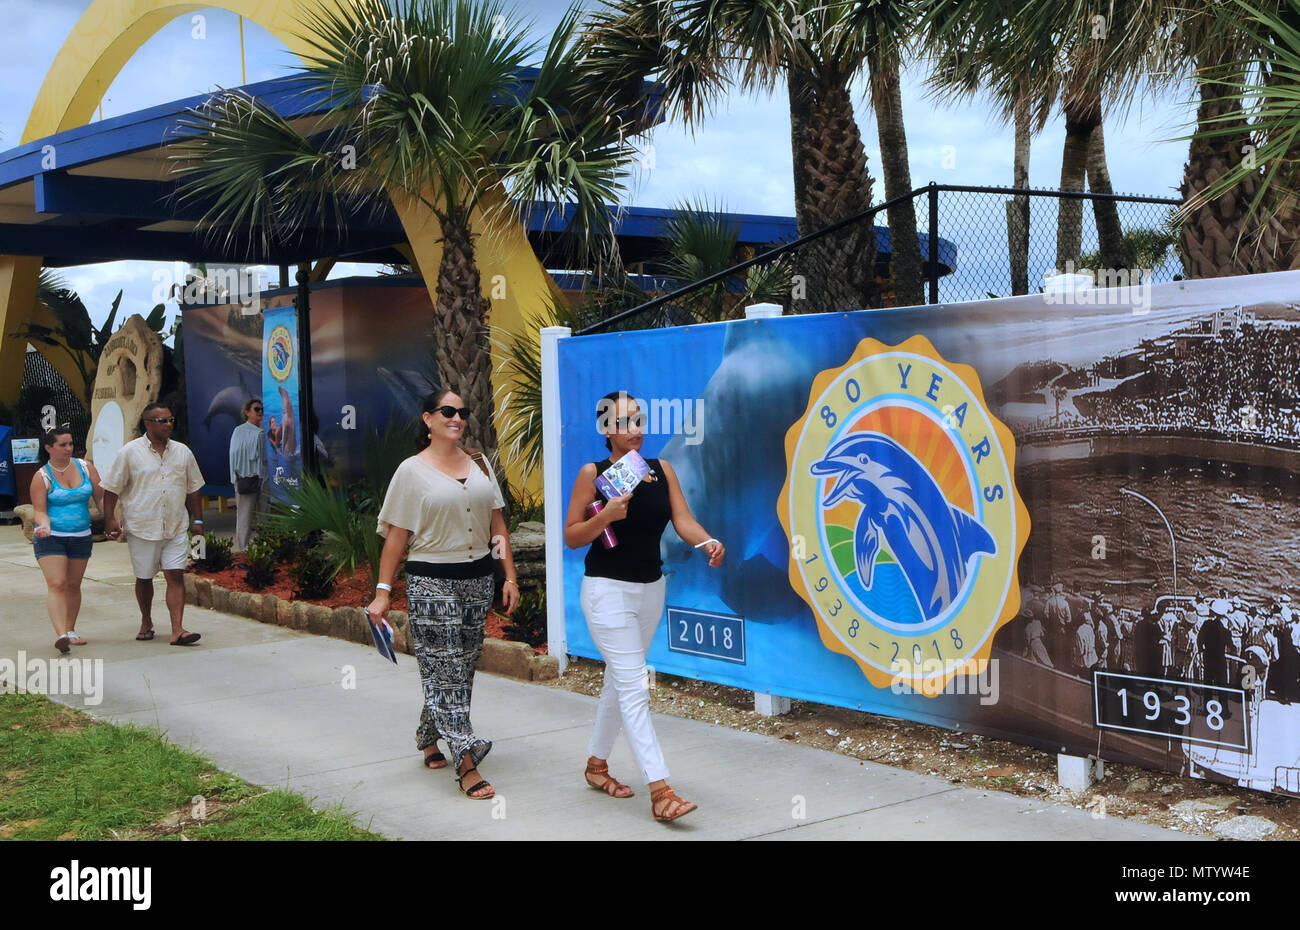 Marineland, USA. May 31, 2018 - Marineland, Florida, United States - People visit Marineland Dolphin Adventure on the attraction's 80th anniversary in Marineland, Florida on May 31, 2018. The park, the world's first oceanarium, opened in 1938 as Marine Studios, allowing filmmakers to shoot underwater footage and visitors to see marine life live and up close. Credit: Paul Hennessy/Alamy Live News Stock Photo